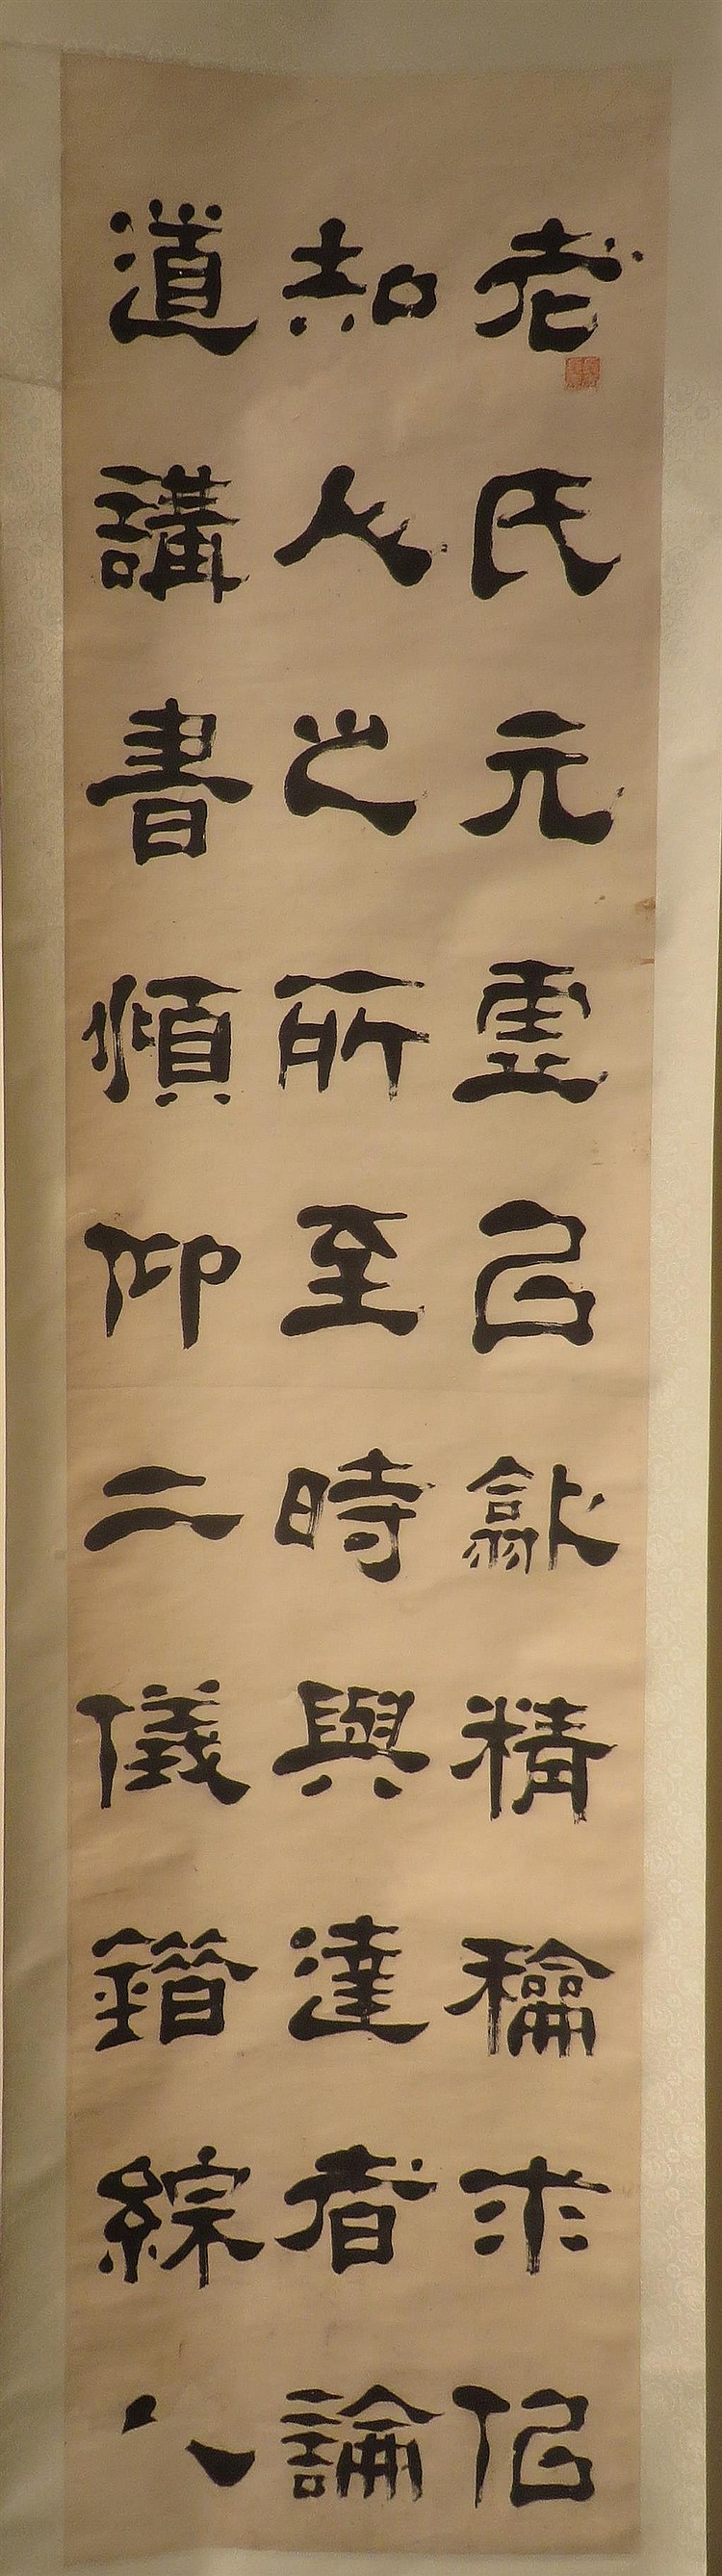 ZHANG ZU YI (1849-1917), LATE 19TH/ EARLY 20TH CENTURY, official scripts